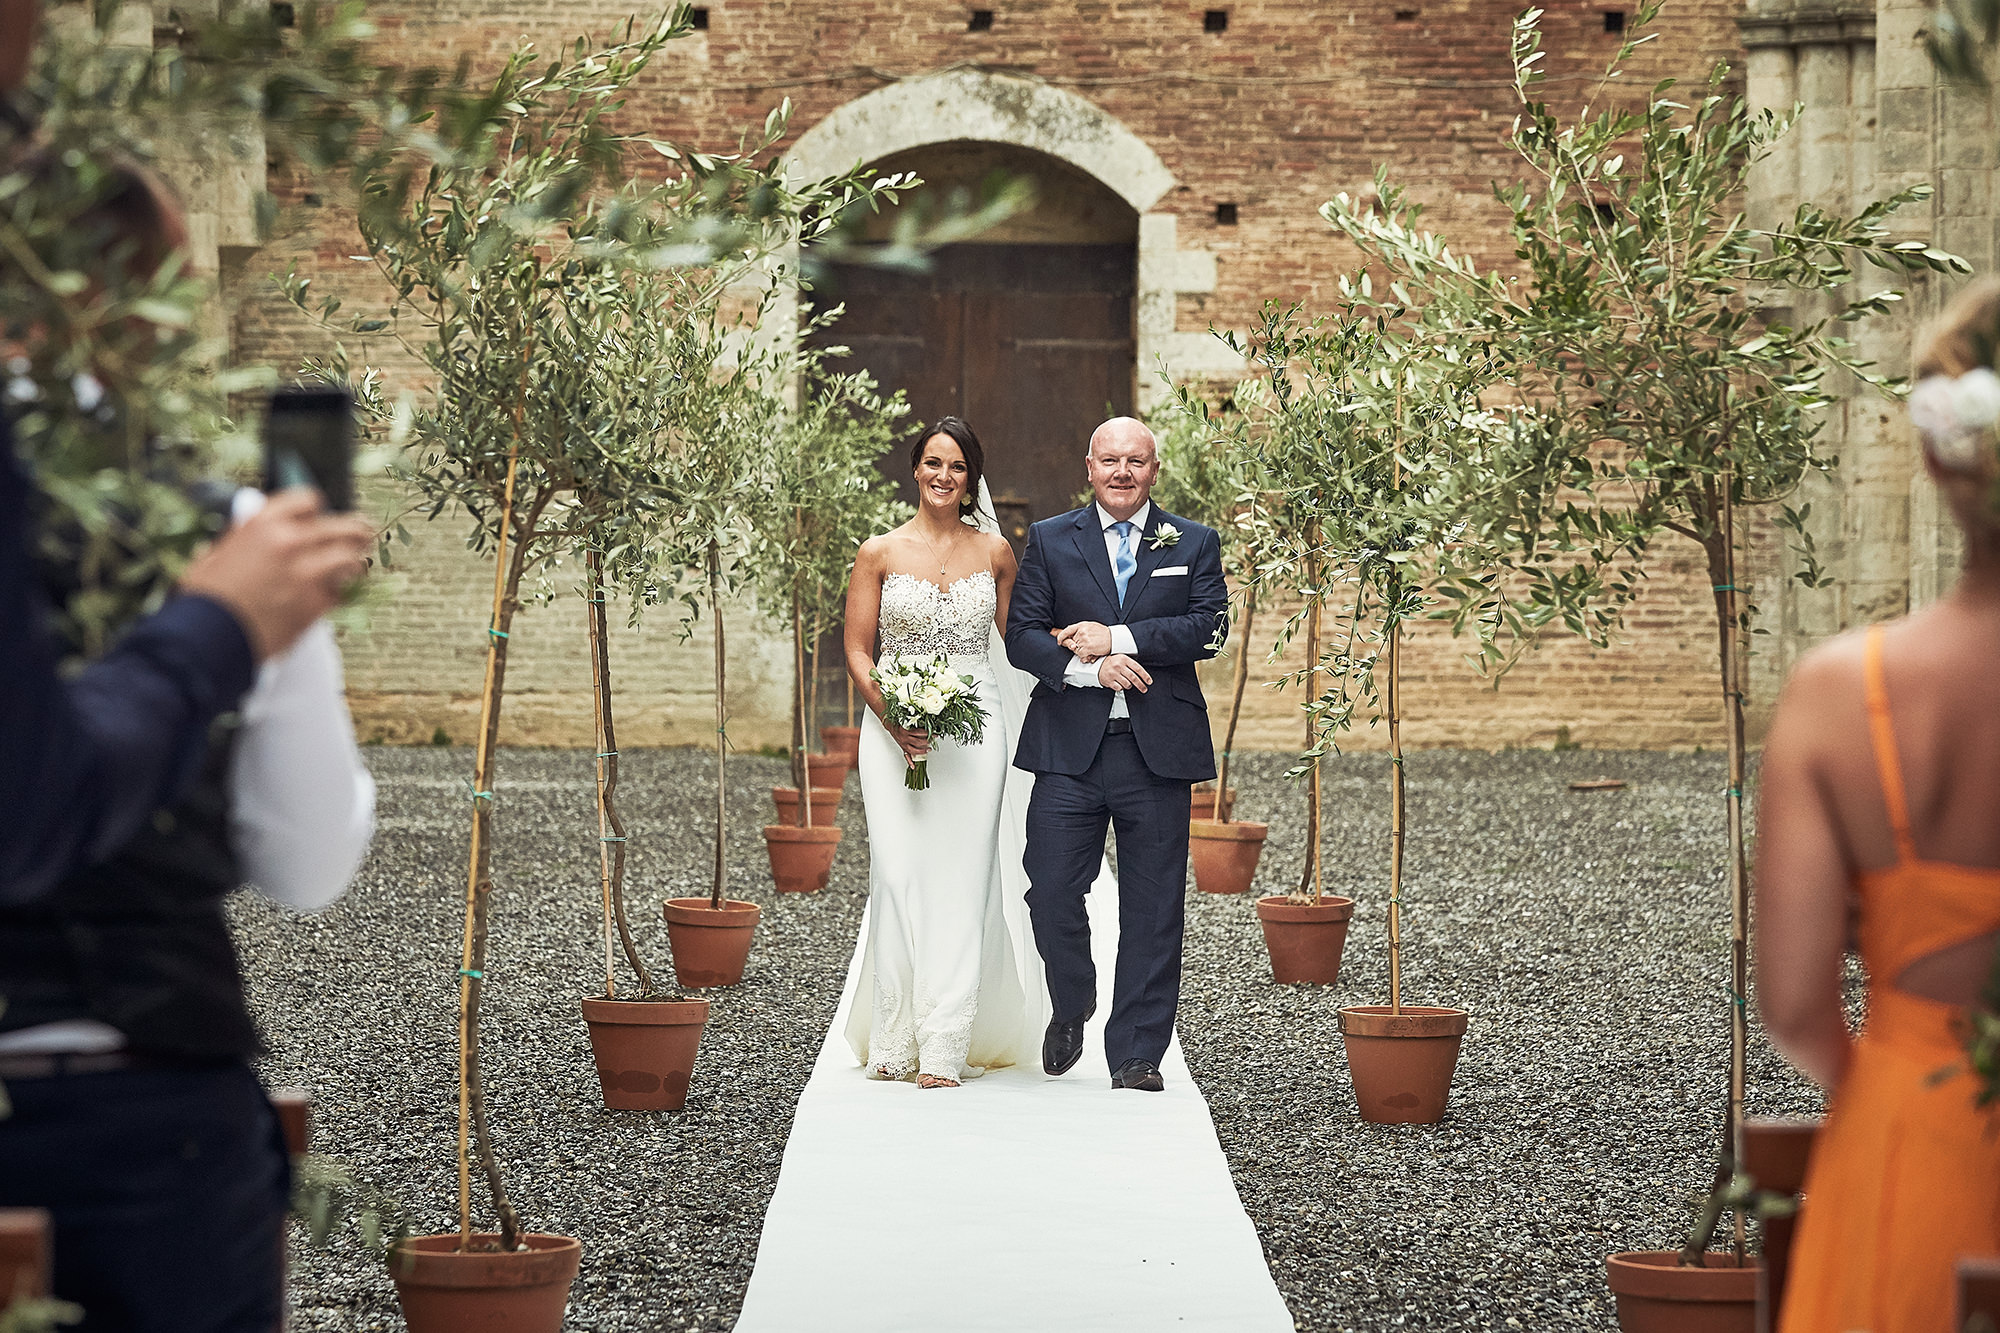 Wedding ceremony in roofless church in Tuscany